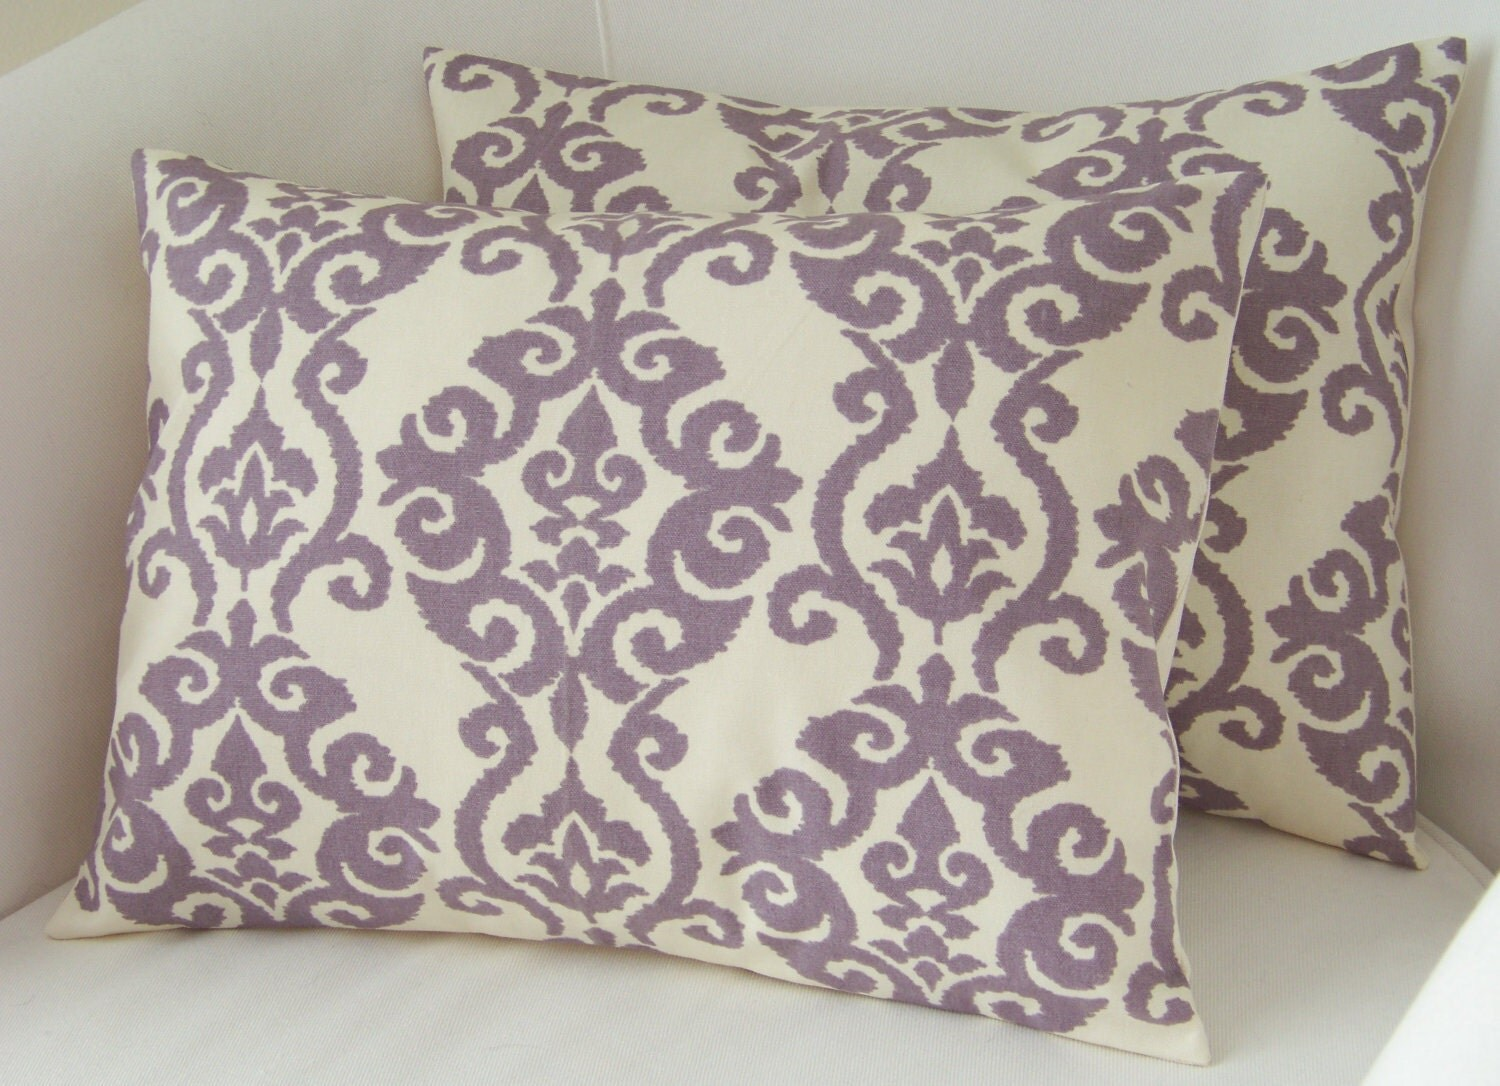 lilac purple pillow covers set of two lumbar pillows by